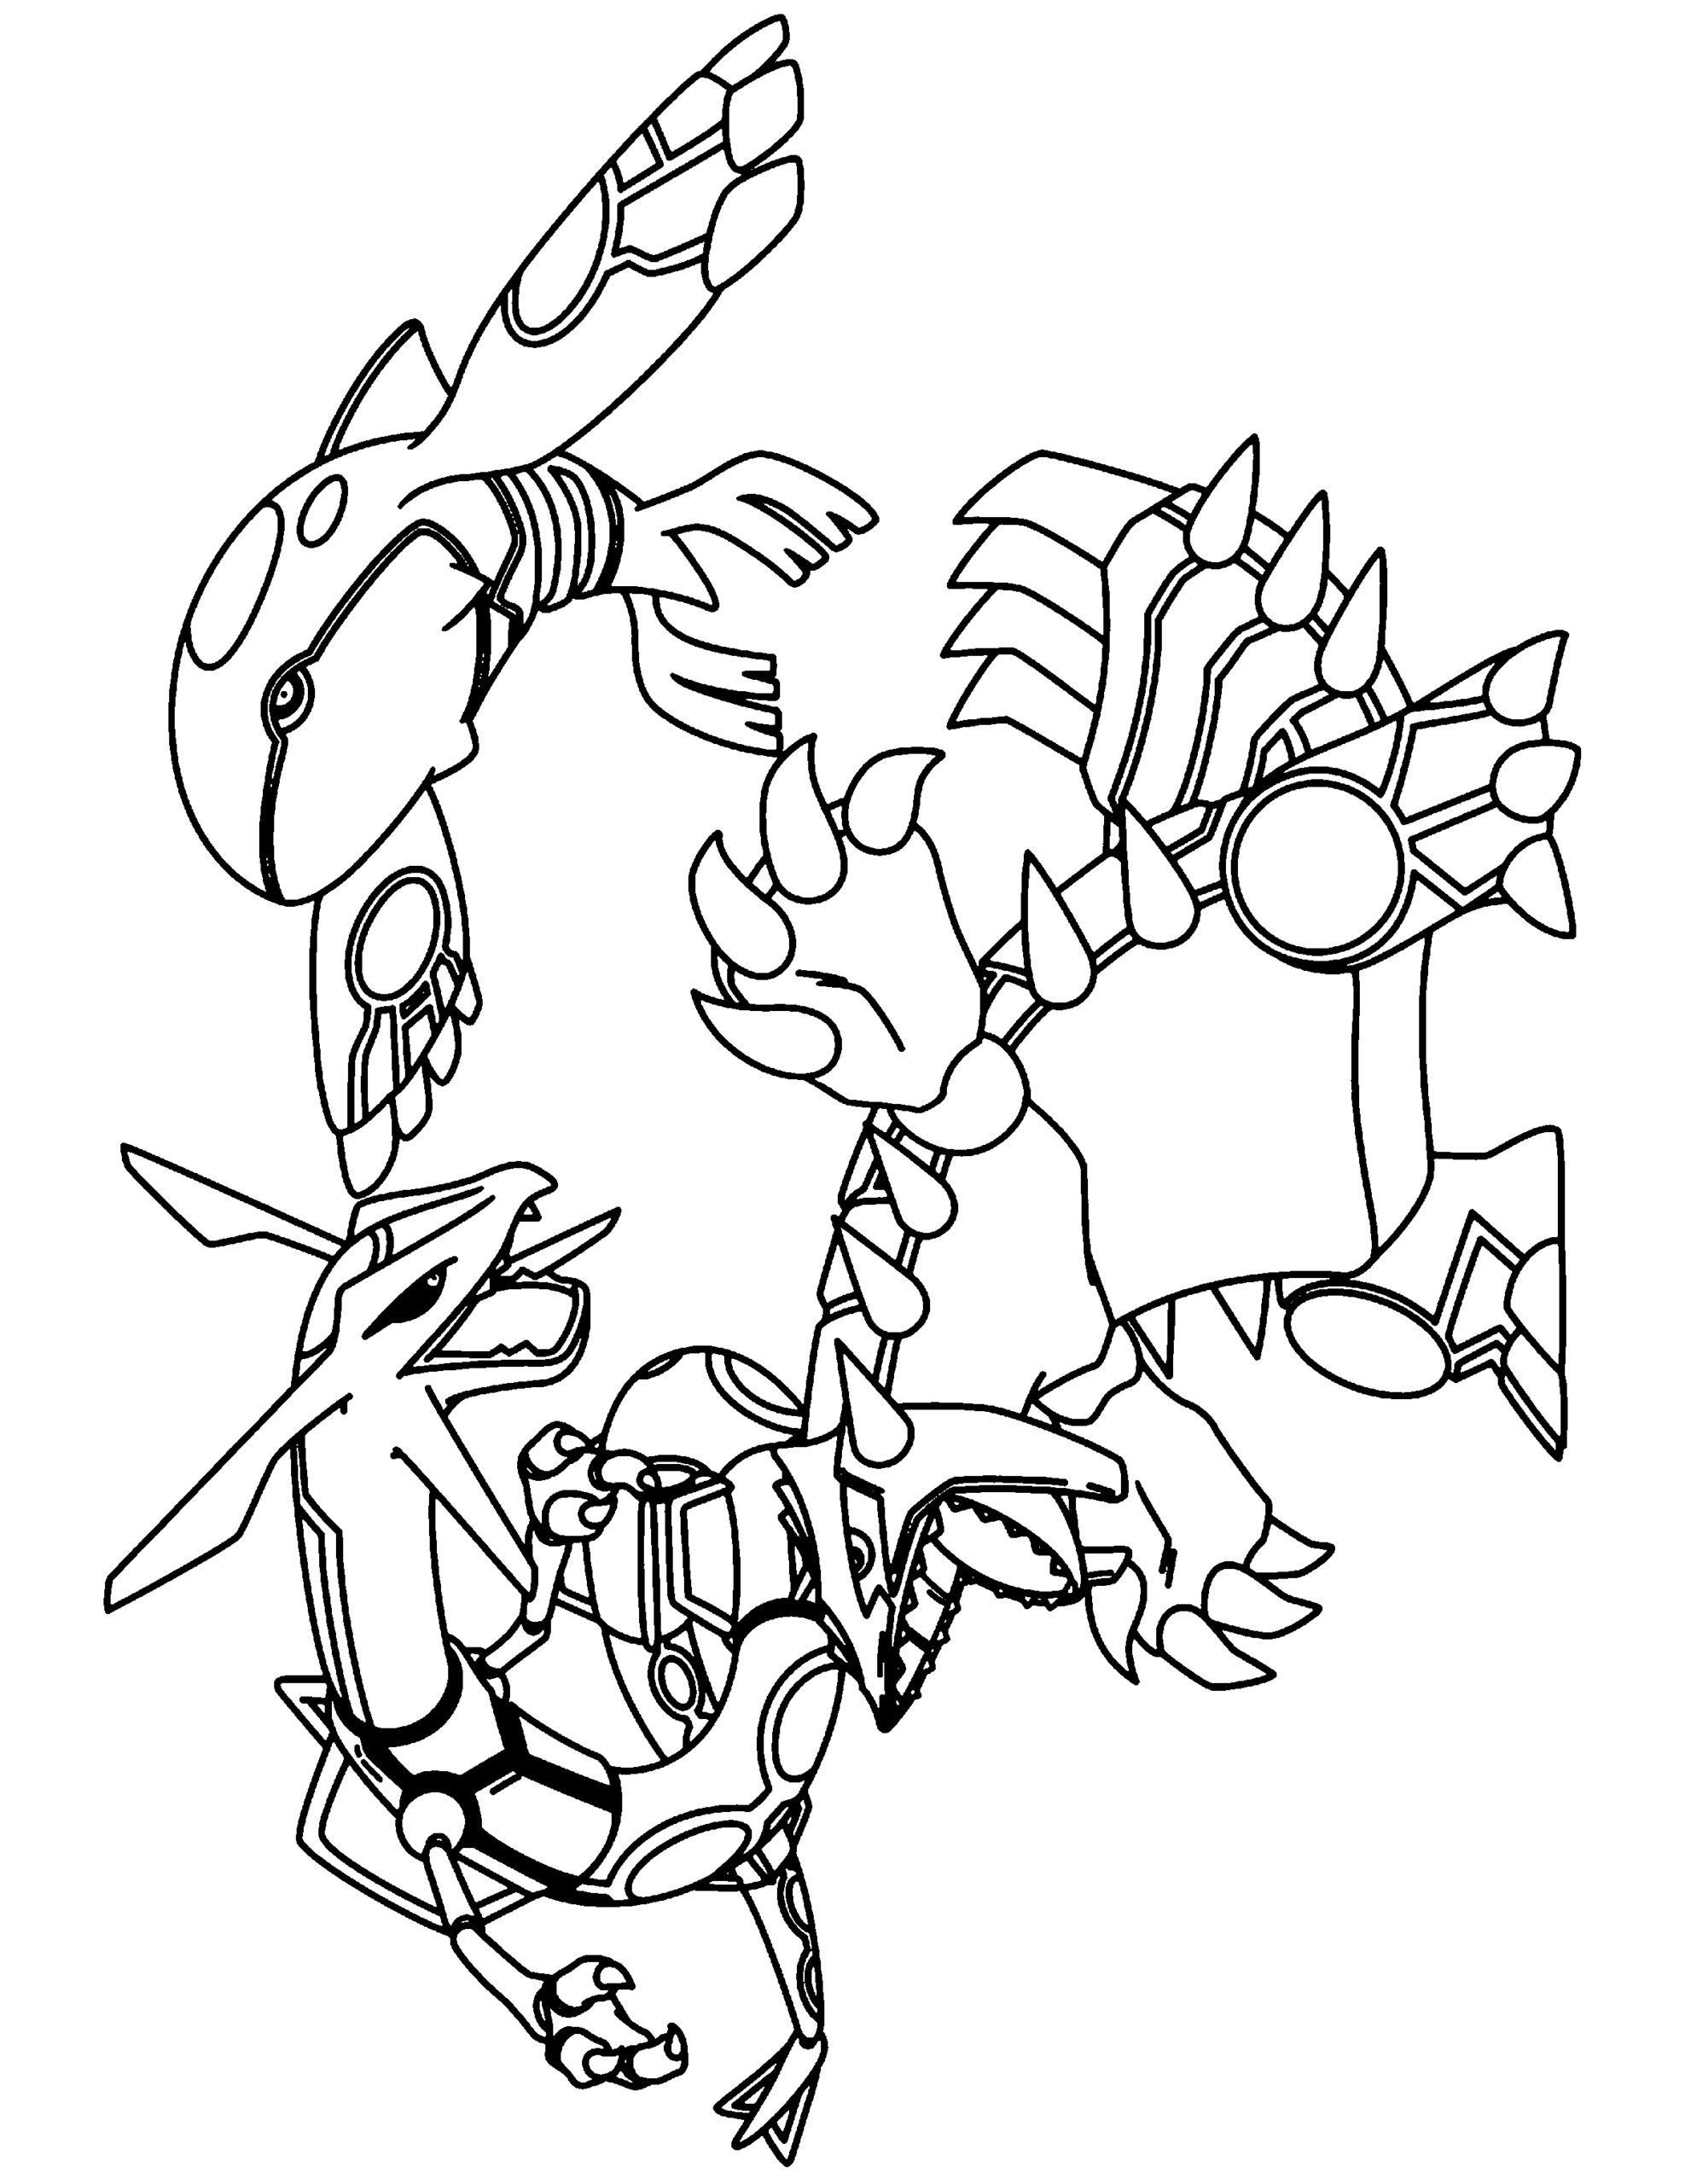 Pokemon Mandala Coloring Pages Coloring Pages Coloring Book Advanced Books Free For Pokemon Coloring Pages Detailed Coloring Pages Cartoon Coloring Pages